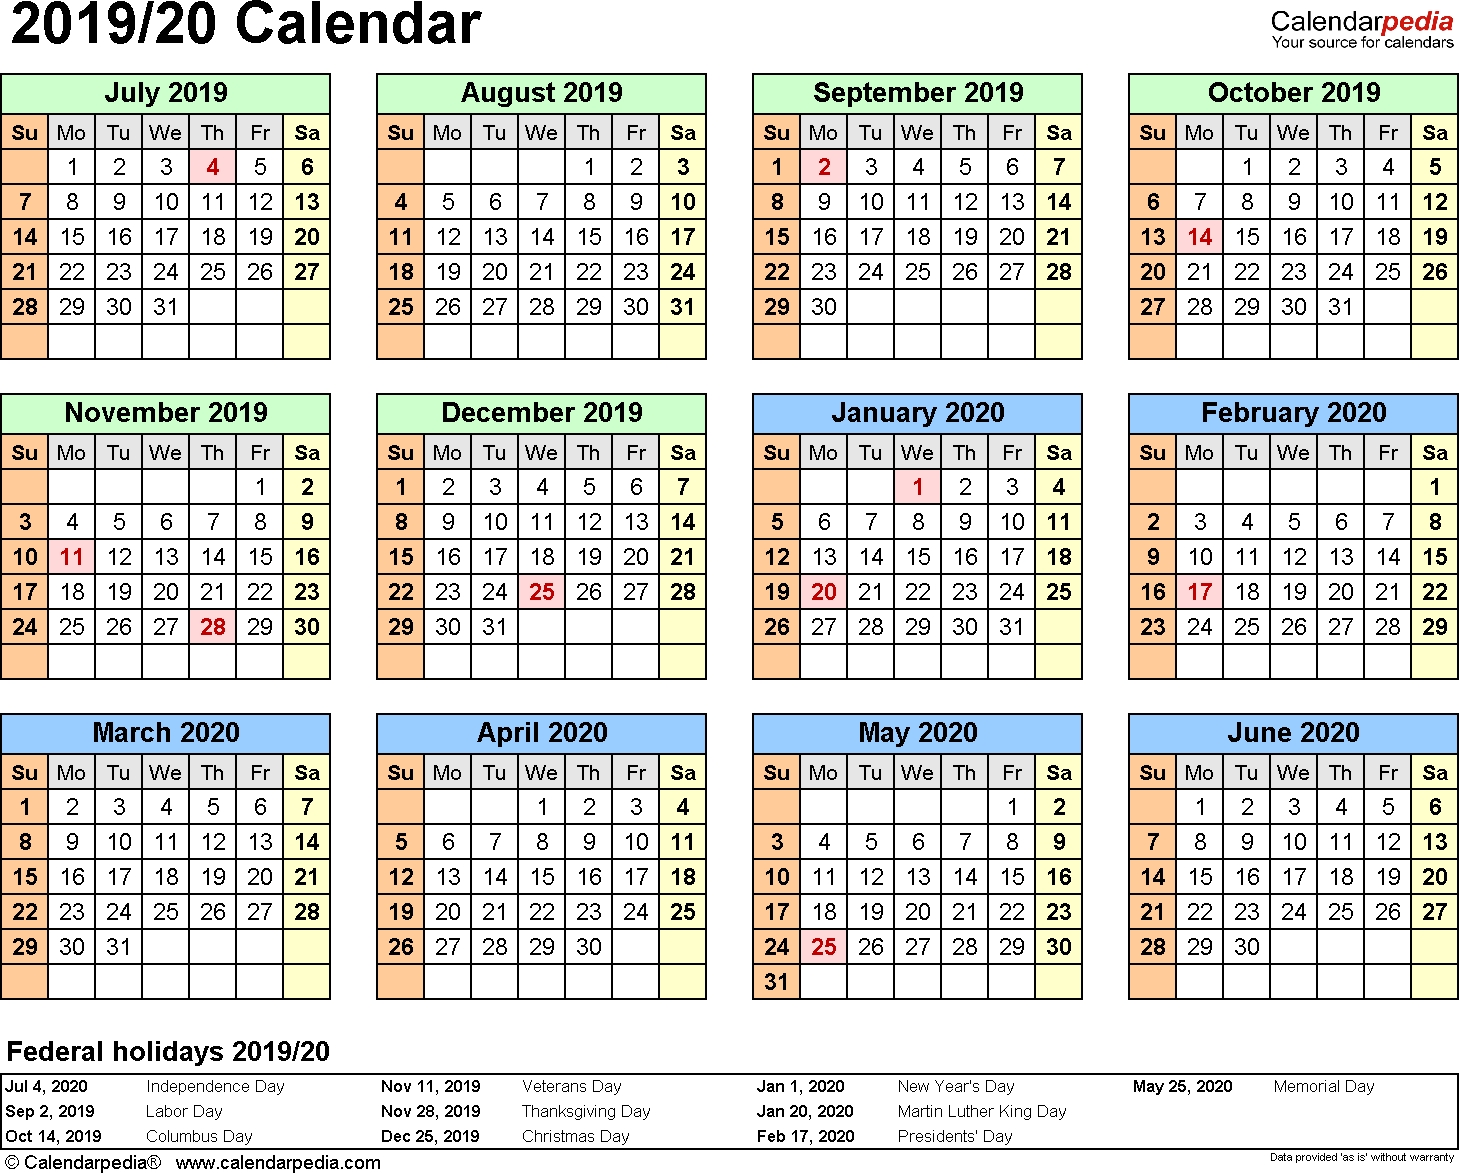 Split Year Calendar 2019/20 (July To June) - Word Templates with Microsoft Word Calendars 2019-2020